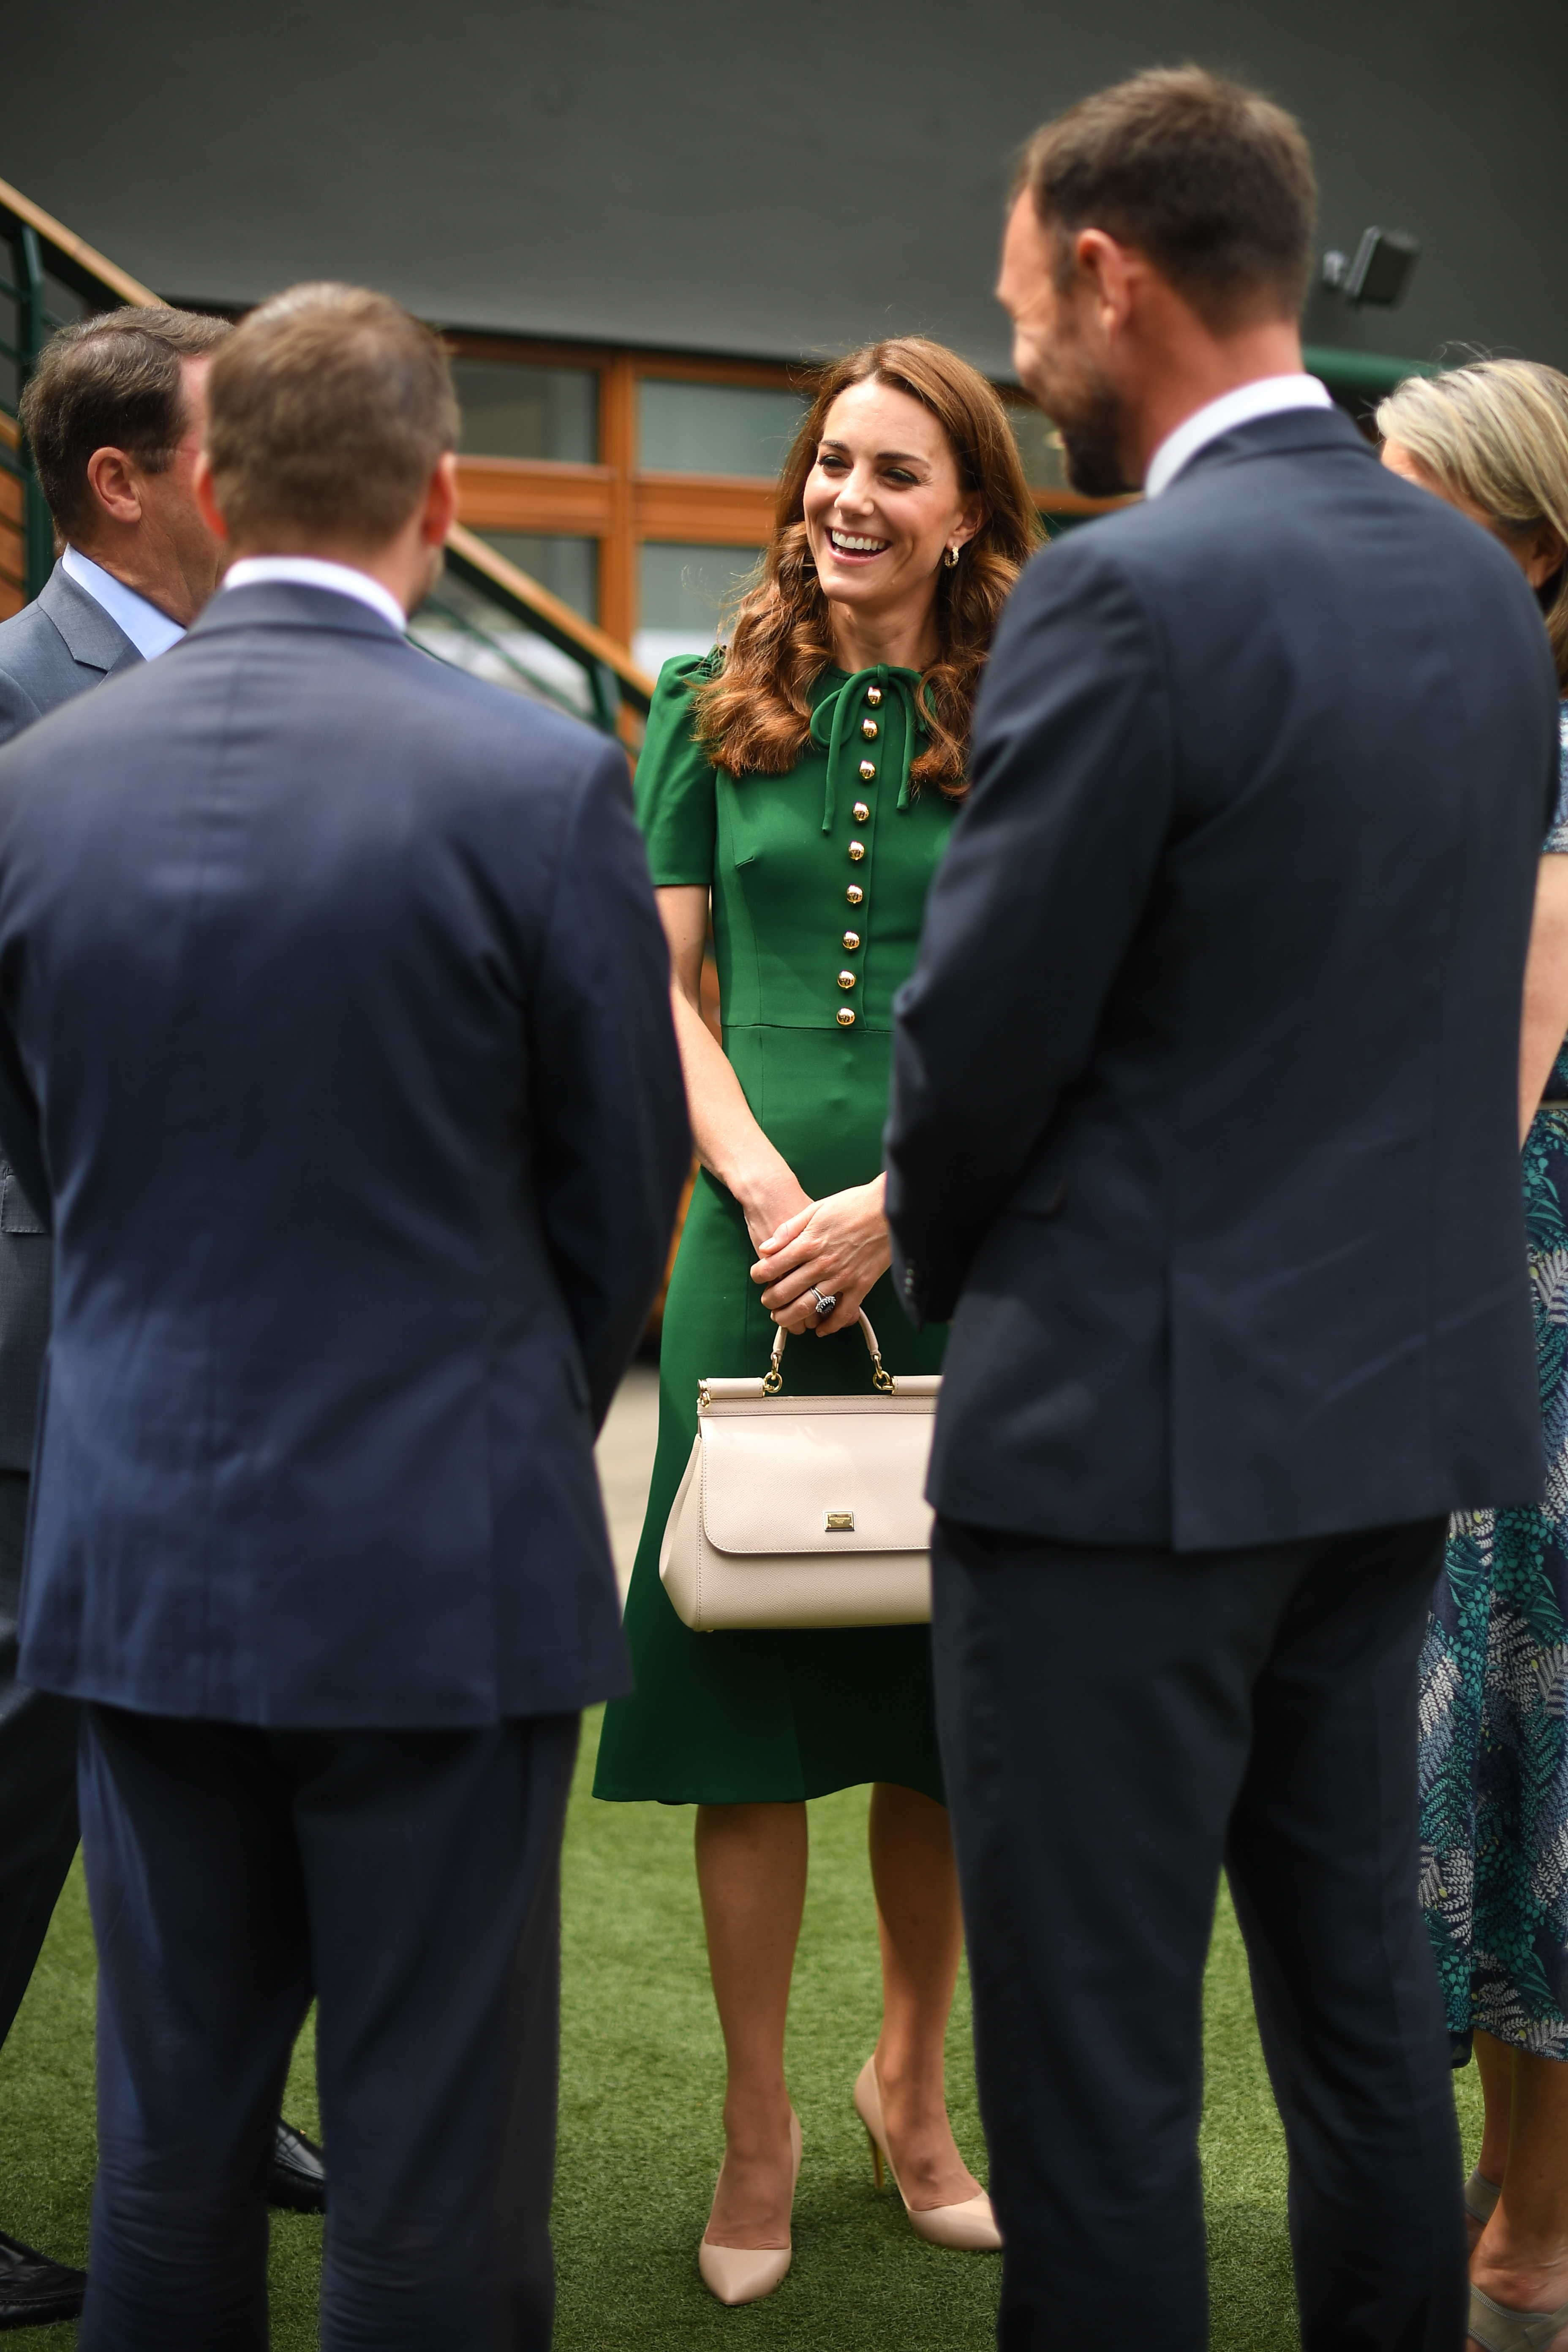 The Duchess of Cambridge ahead of the Women's Final on day twelve of the Wimbledon Championships at the All England Lawn Tennis and Croquet Club, Wimbledon.